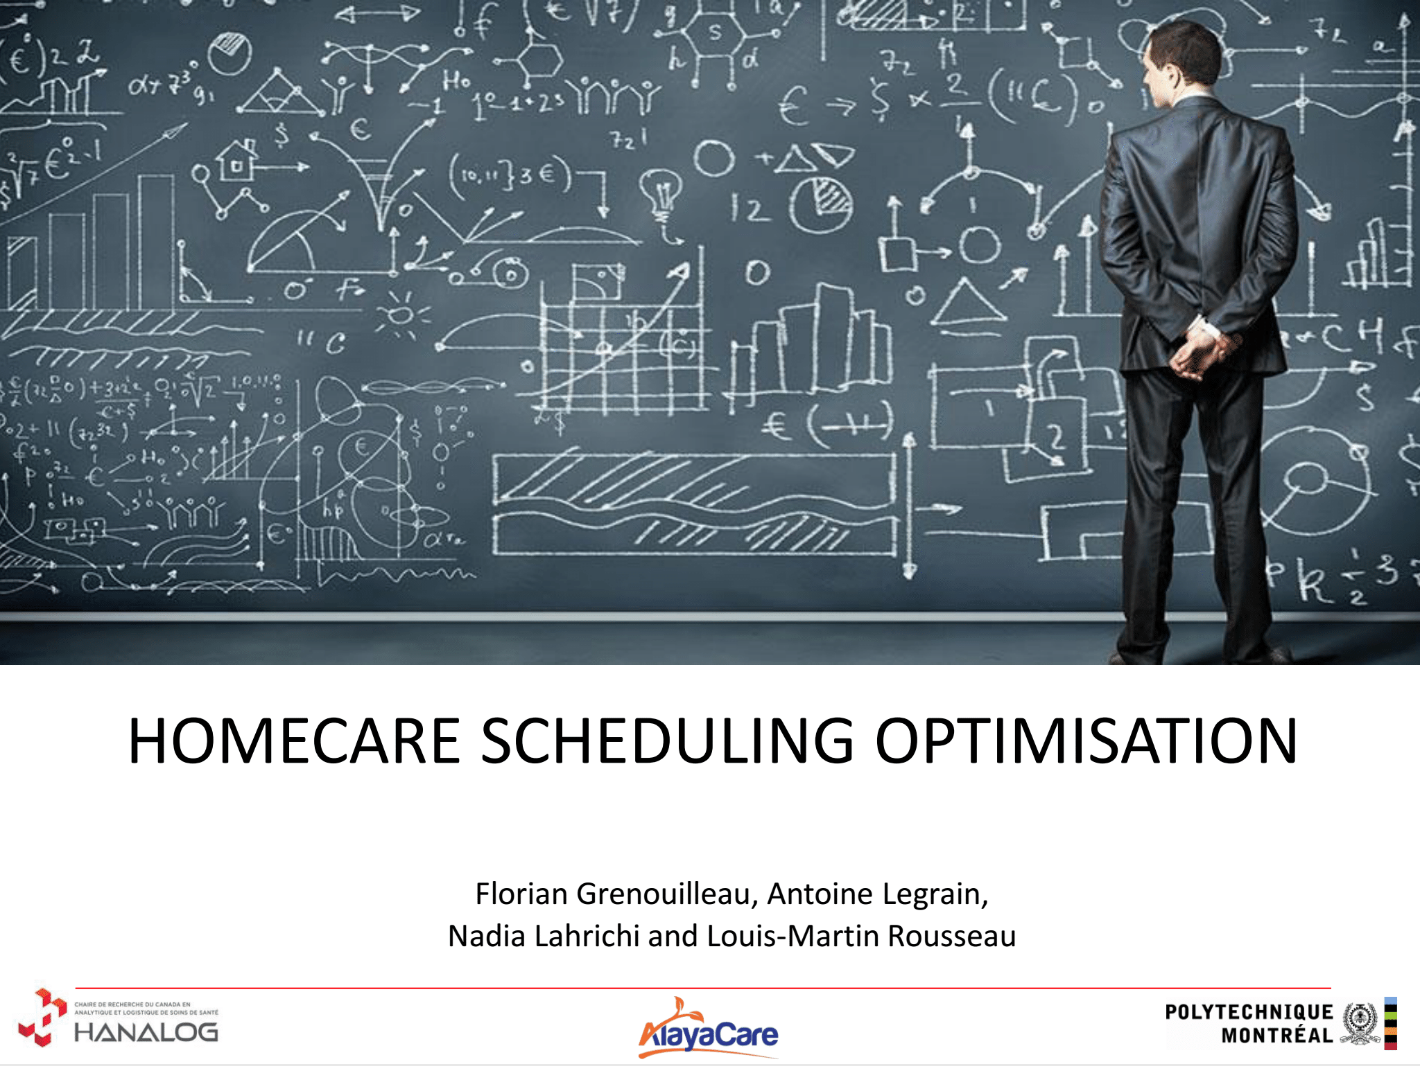 homecare-scheduling-optimization